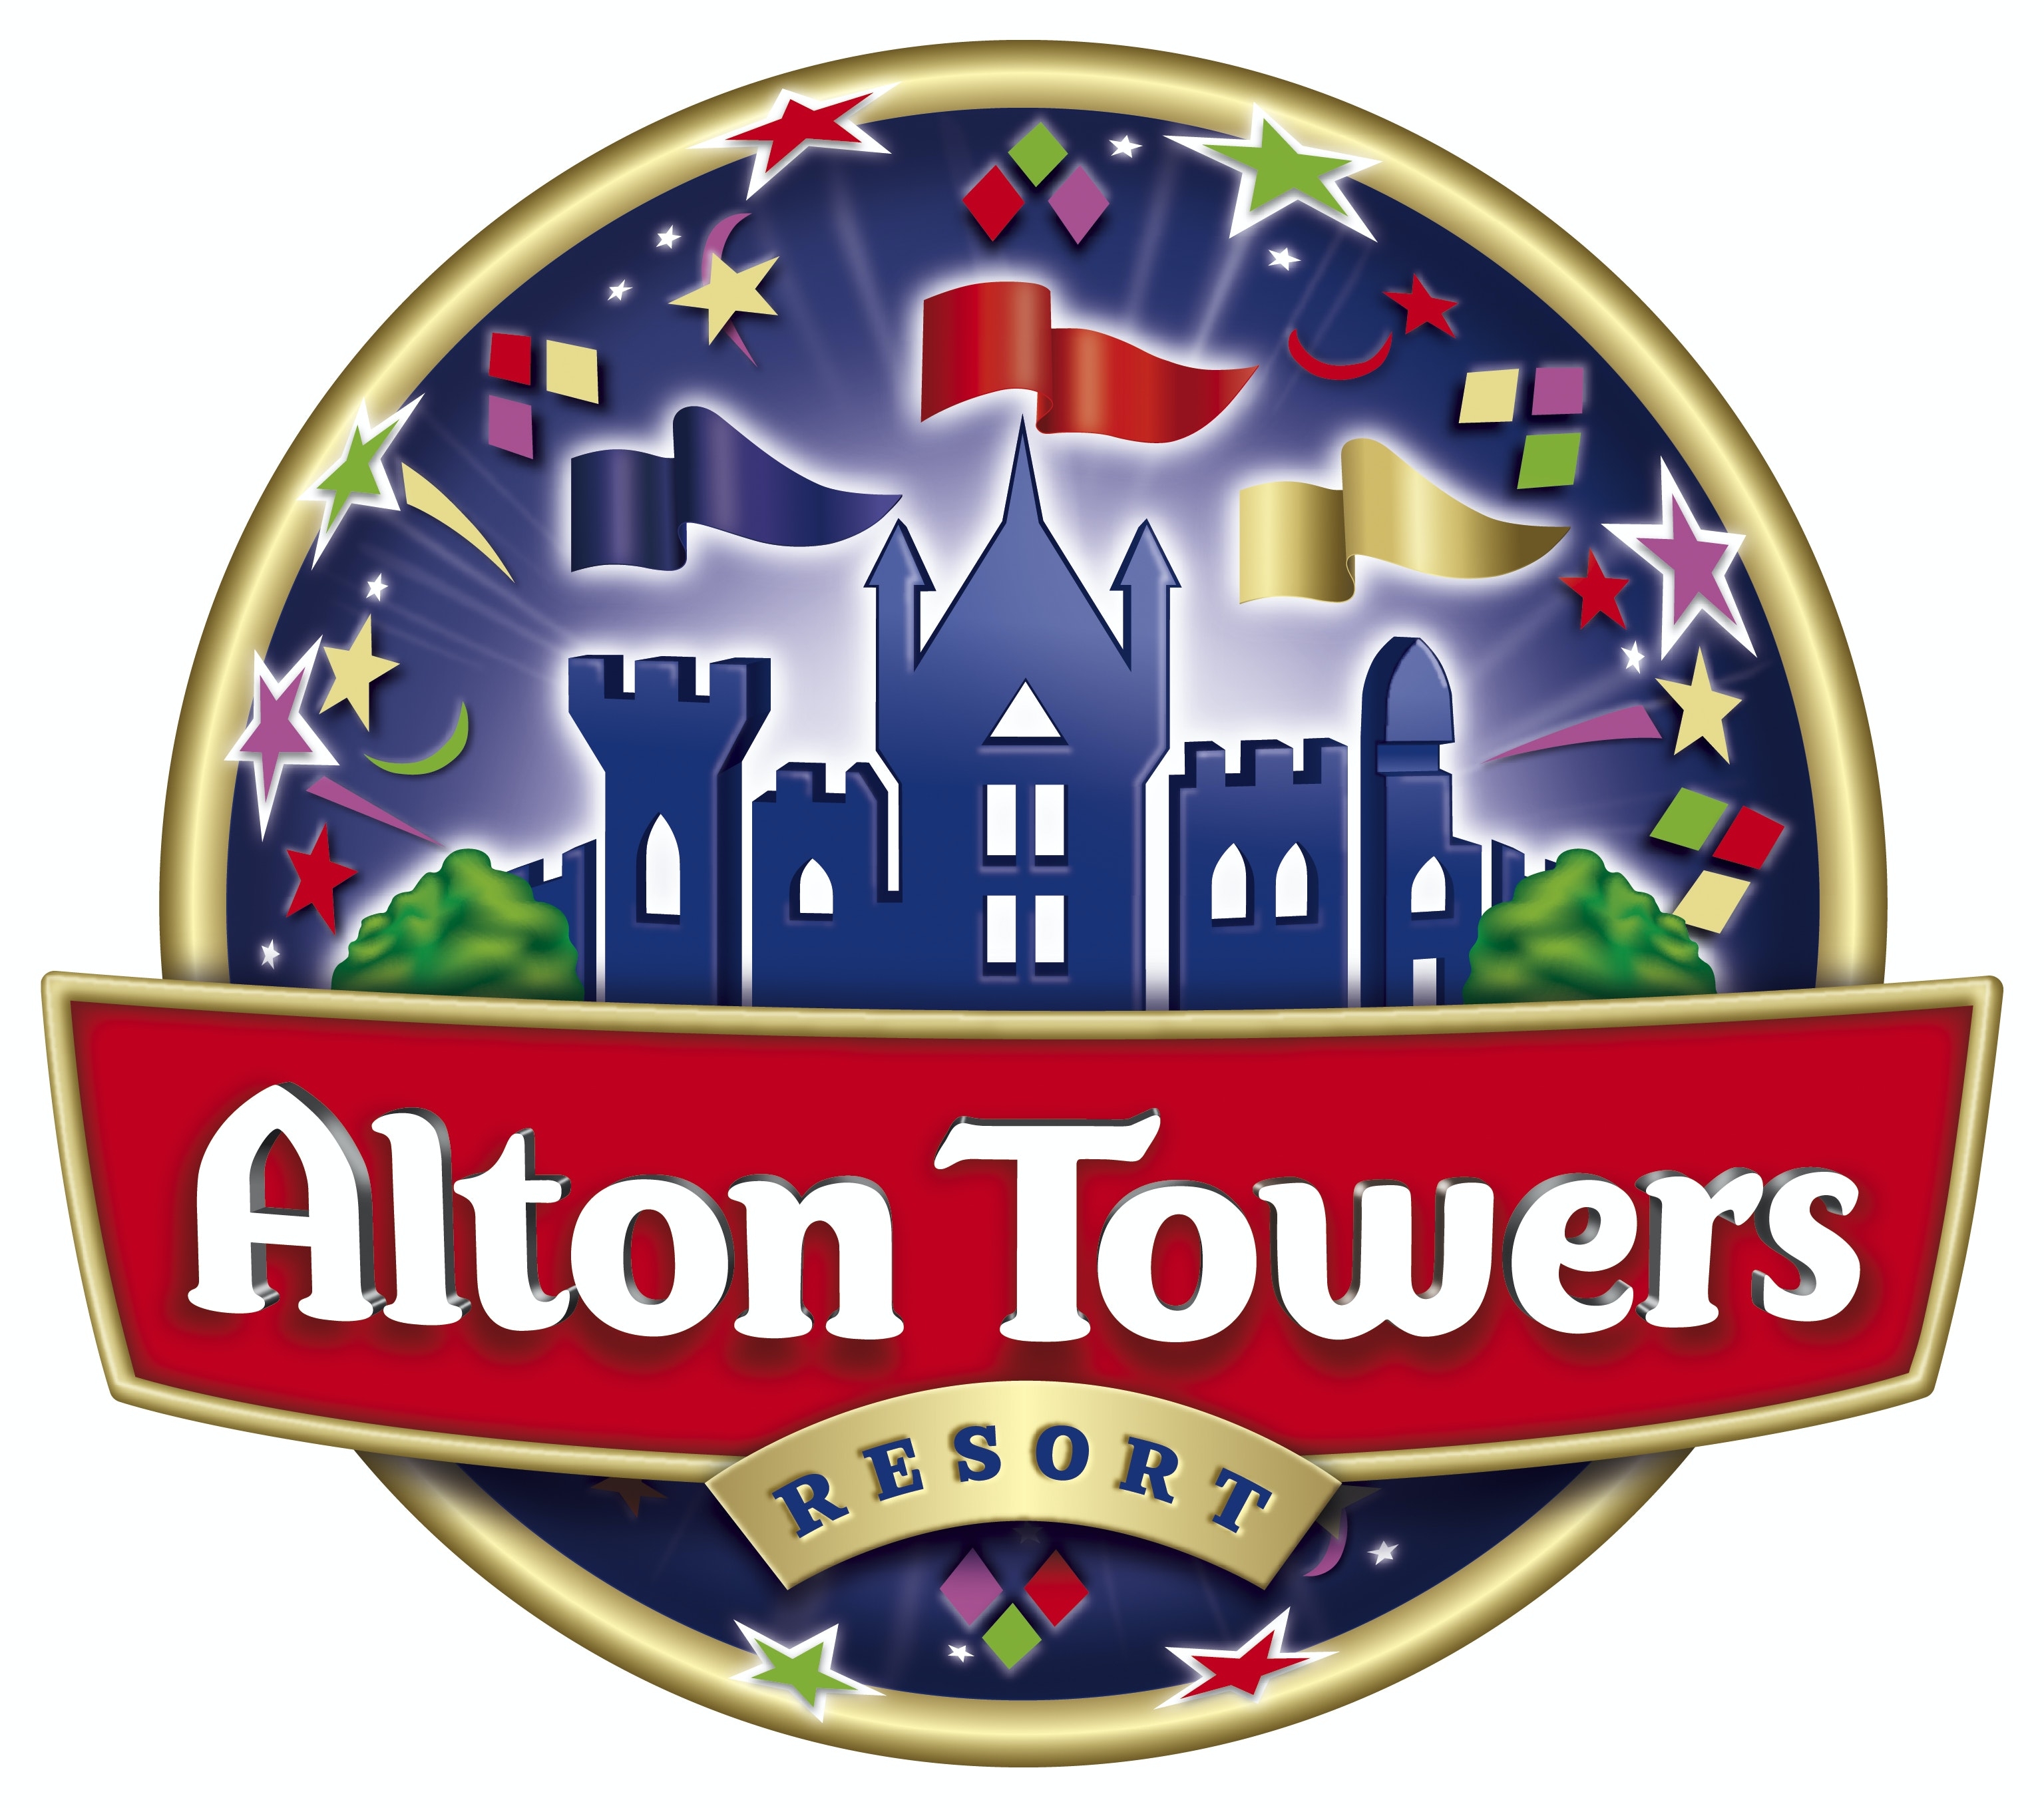 Alton towers resort logo rgb